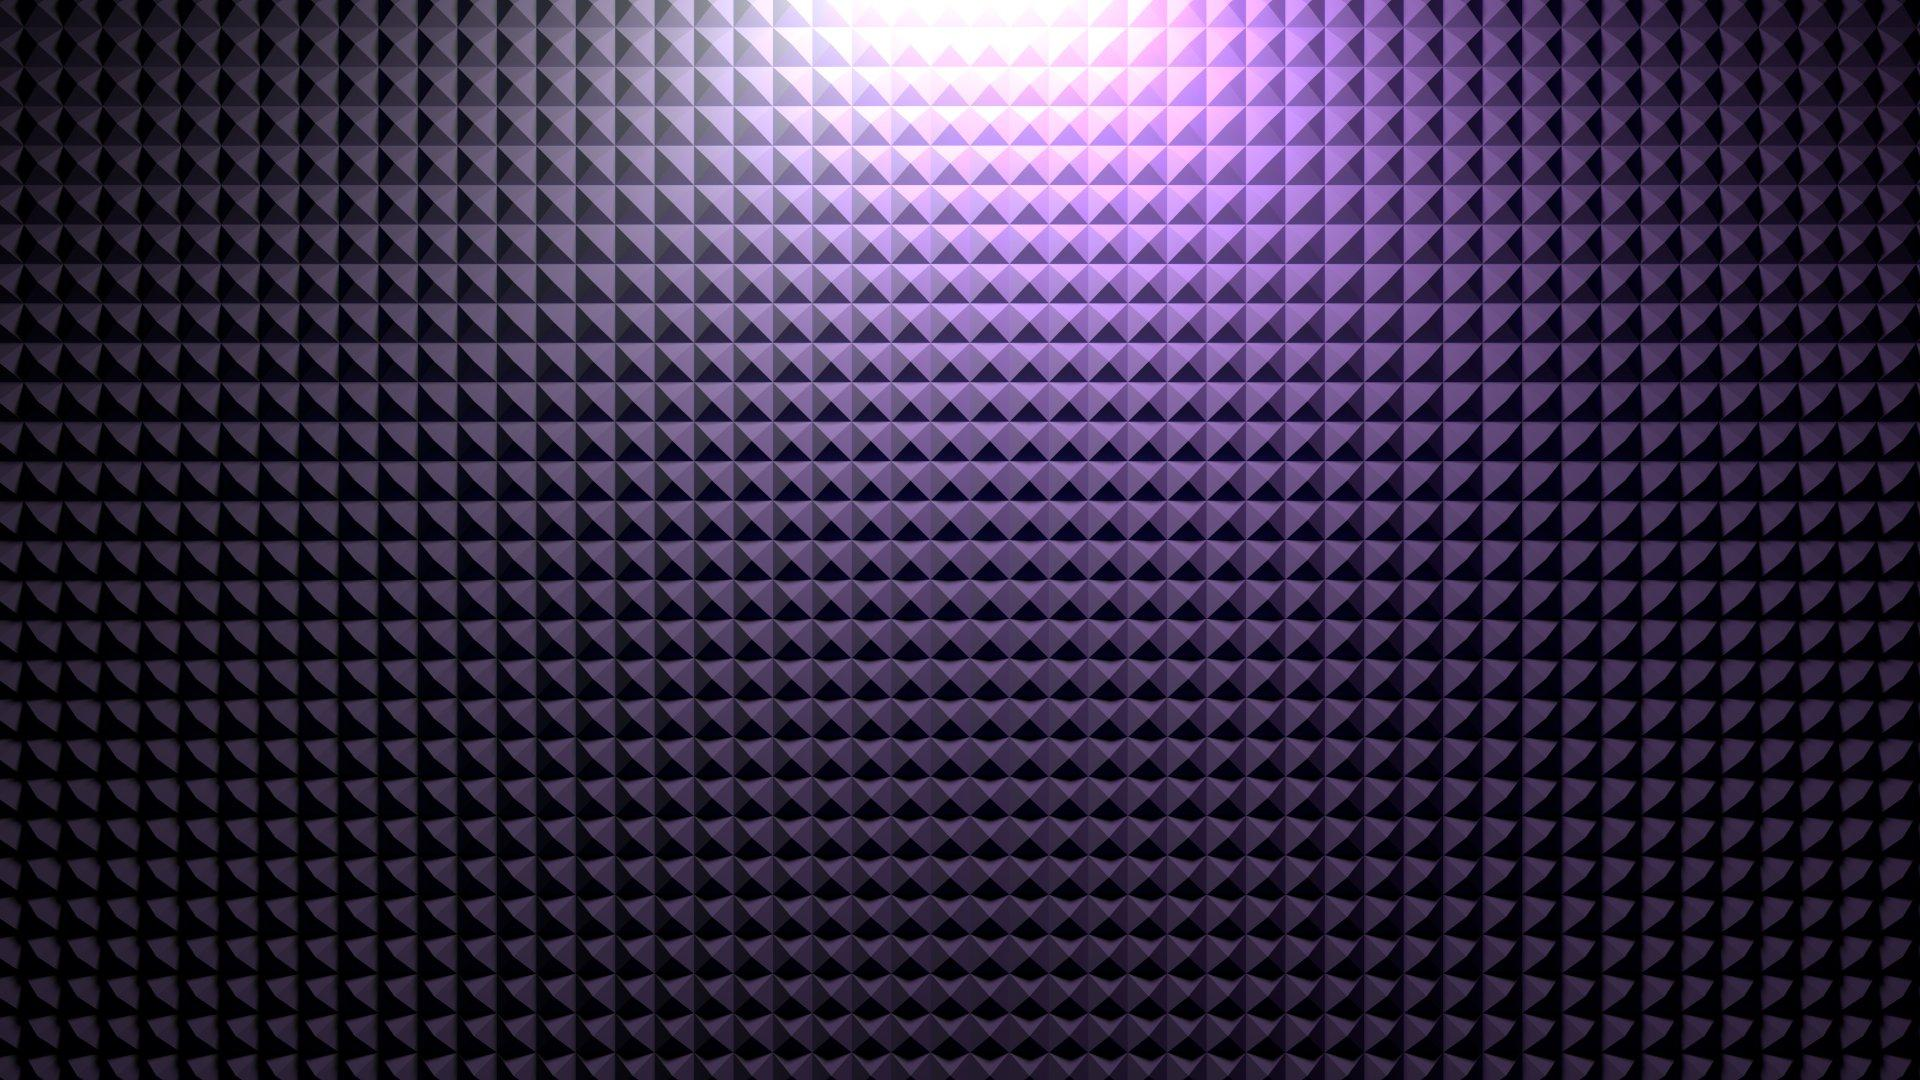 Purple Pyramid Texture Pattern wallpaper